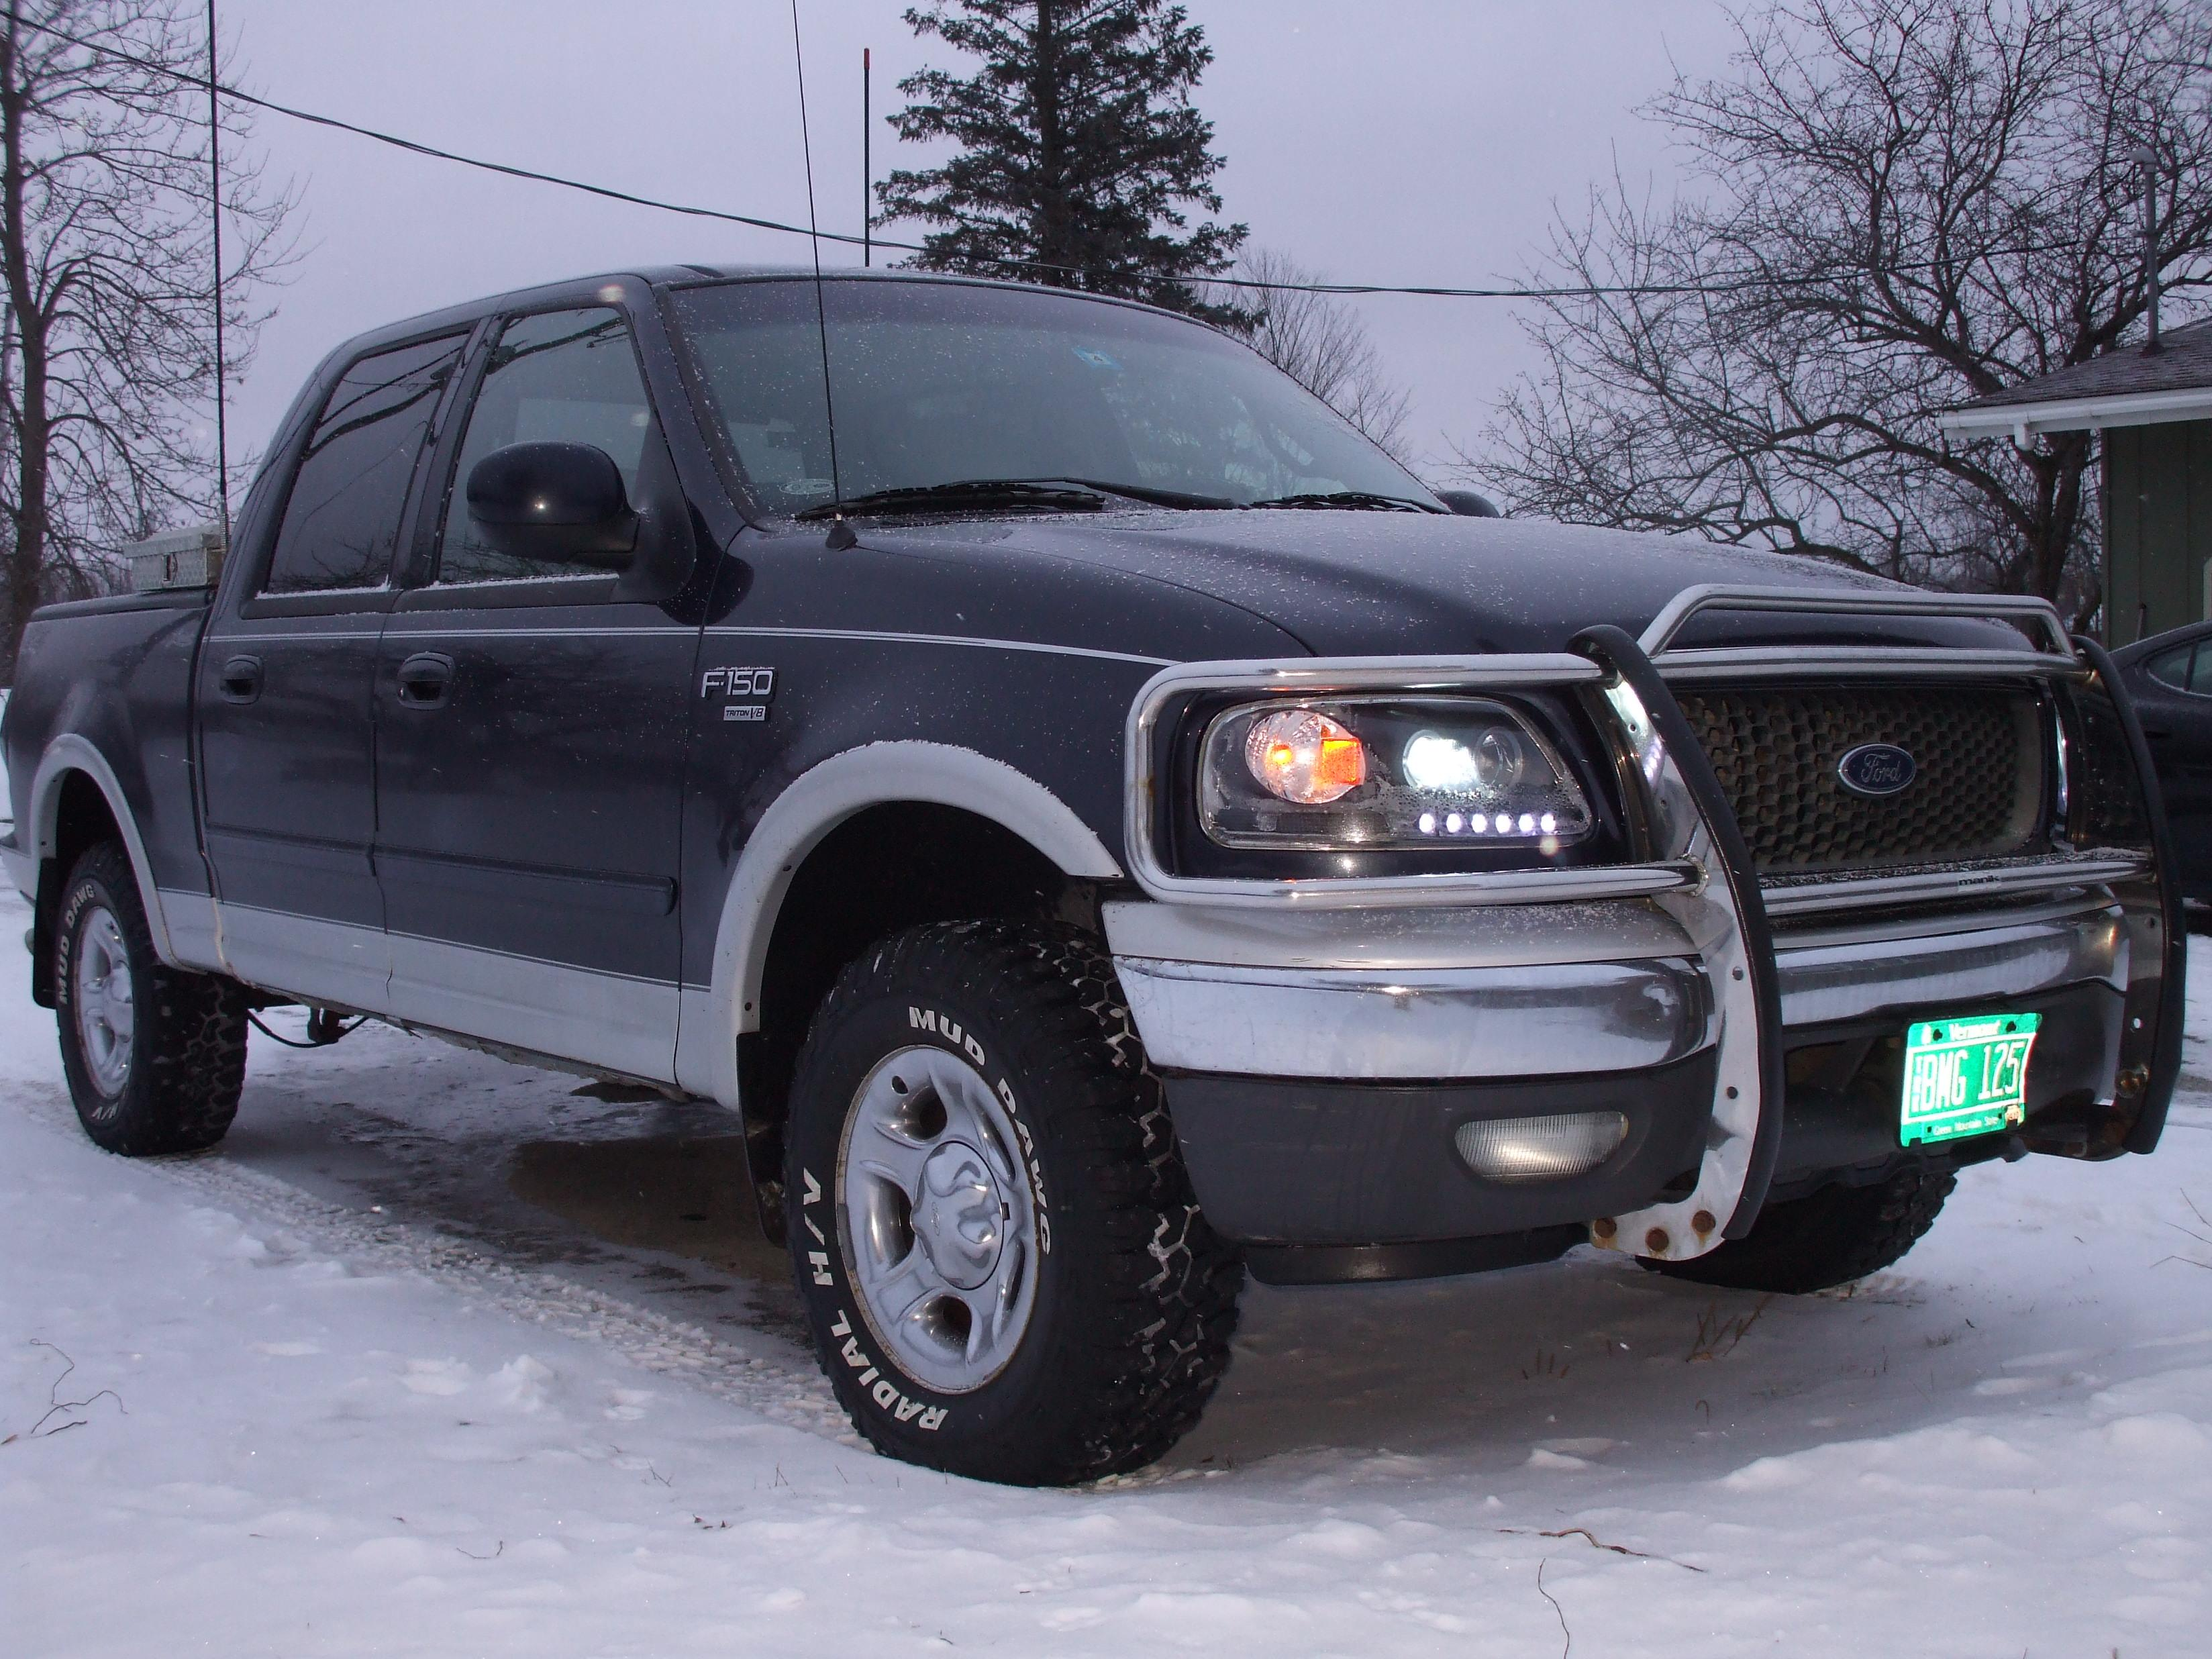 iceicedavey 2001 ford f150 supercrew cab specs photos modification. Cars Review. Best American Auto & Cars Review